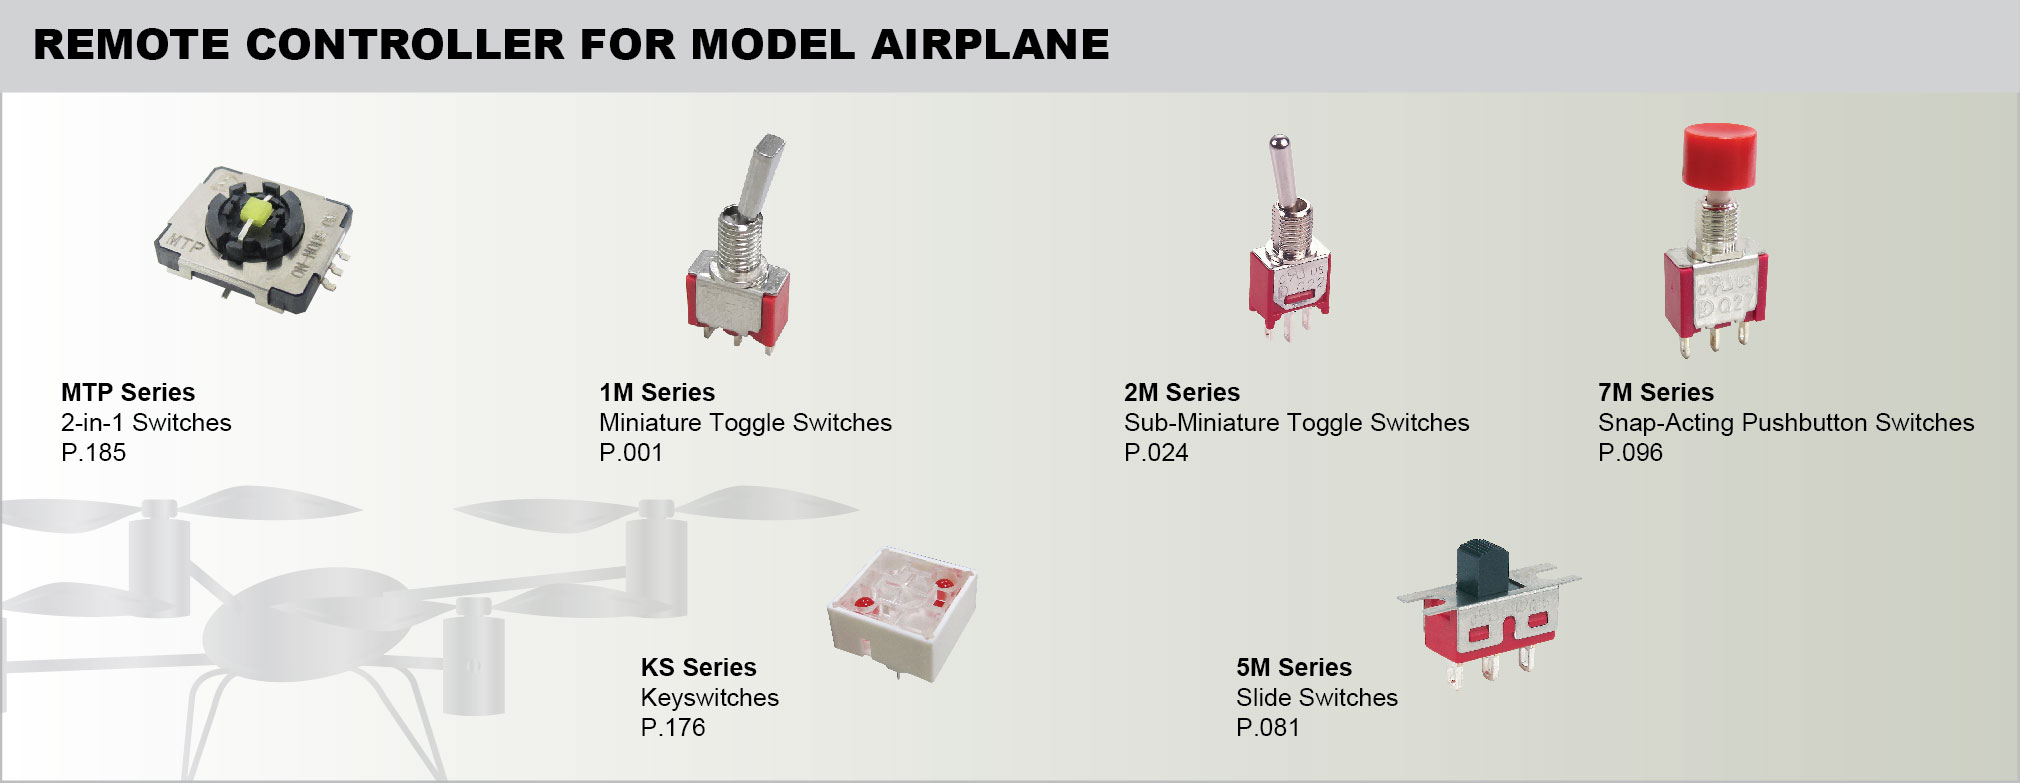 REMOTE CONTROLLER FOR MODEL AIRPLANE